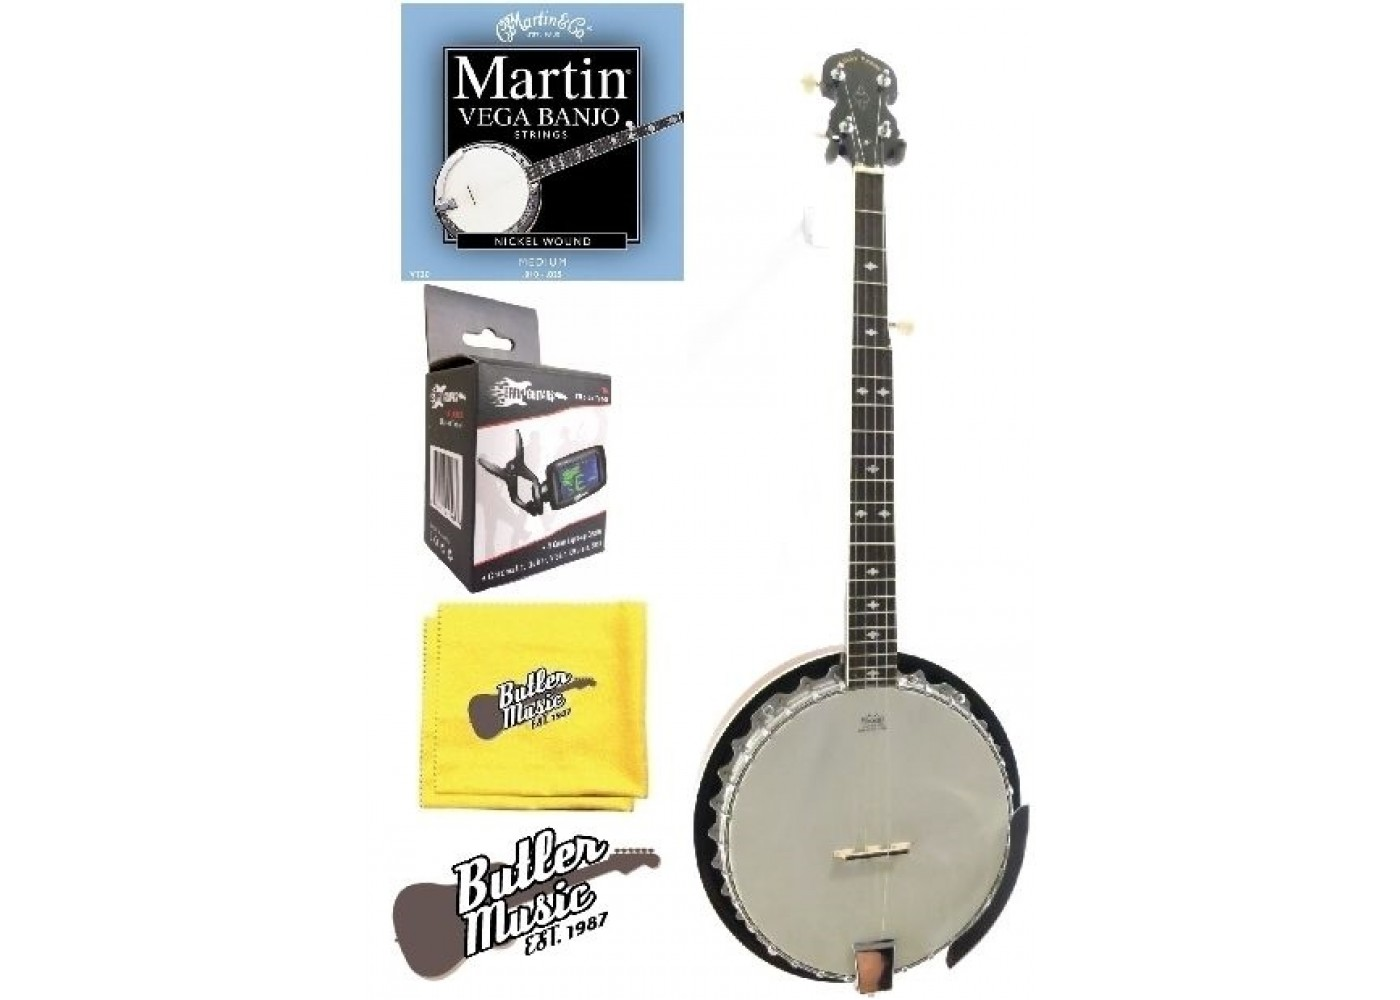 Lucky Penny B5-DL Deluxe 5 String Resonator Banjo with Martin Strings and  More